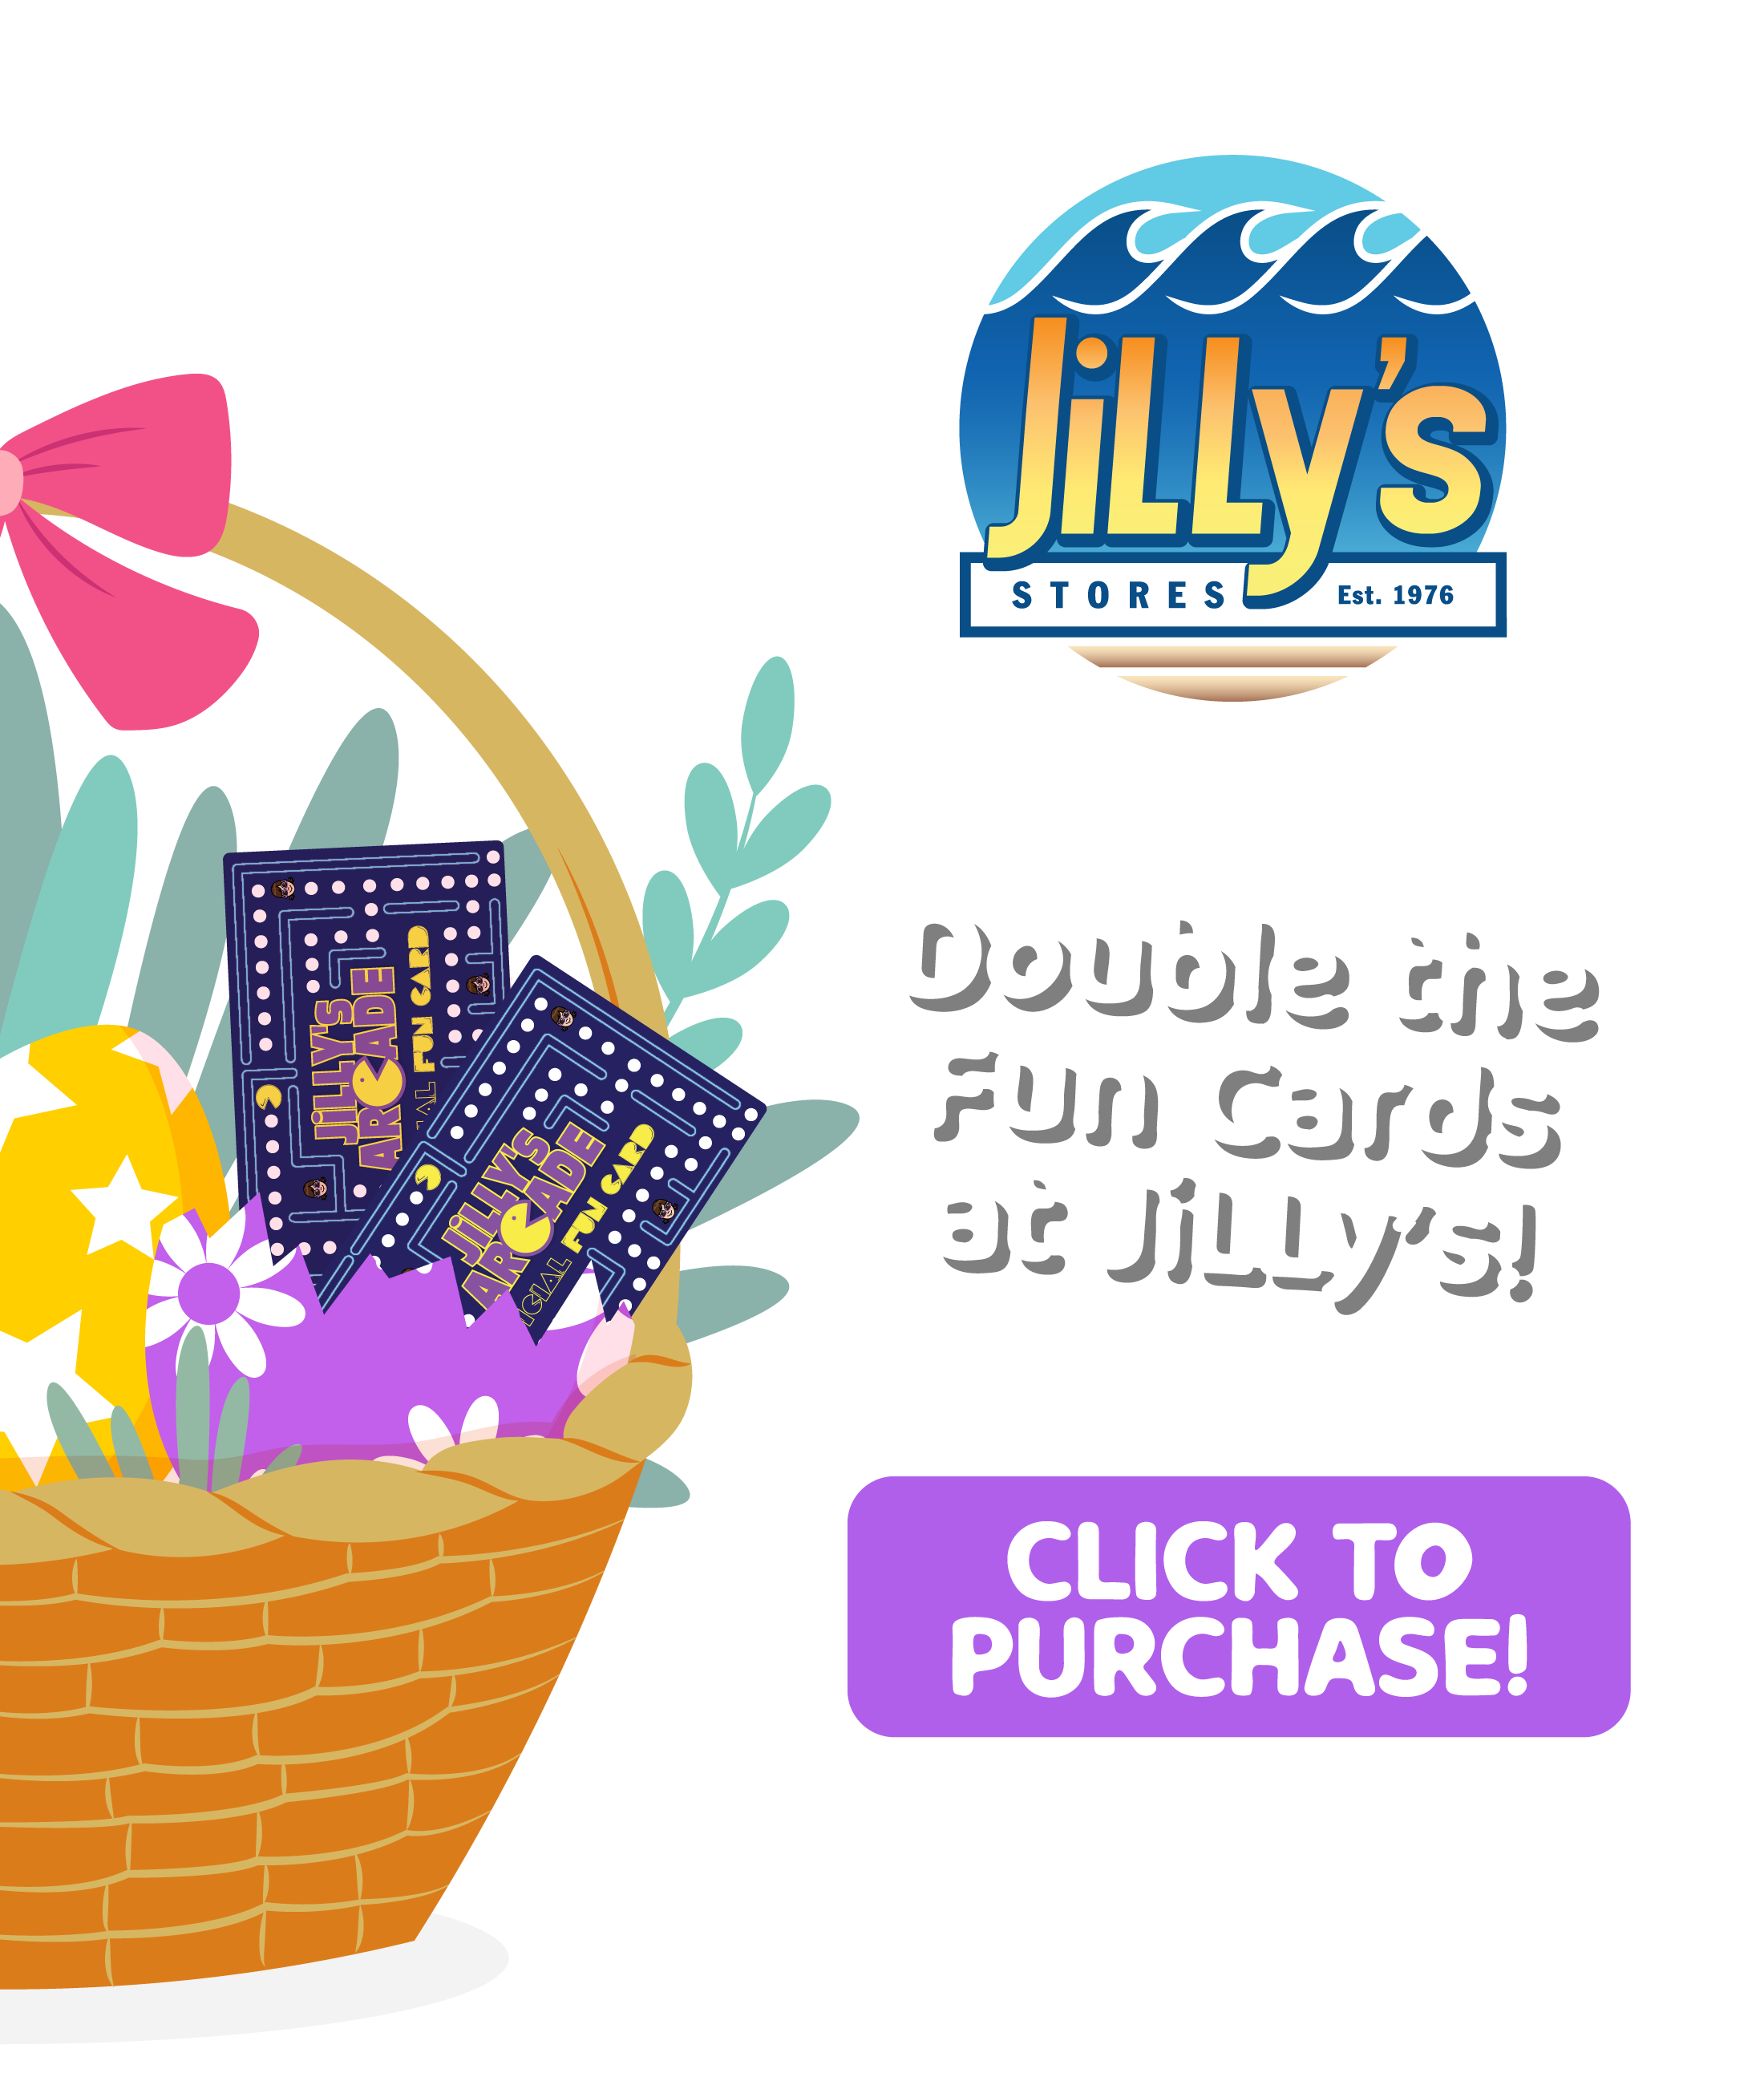 JiLLy's Double the Fun Cards! Click Here To Purchase.